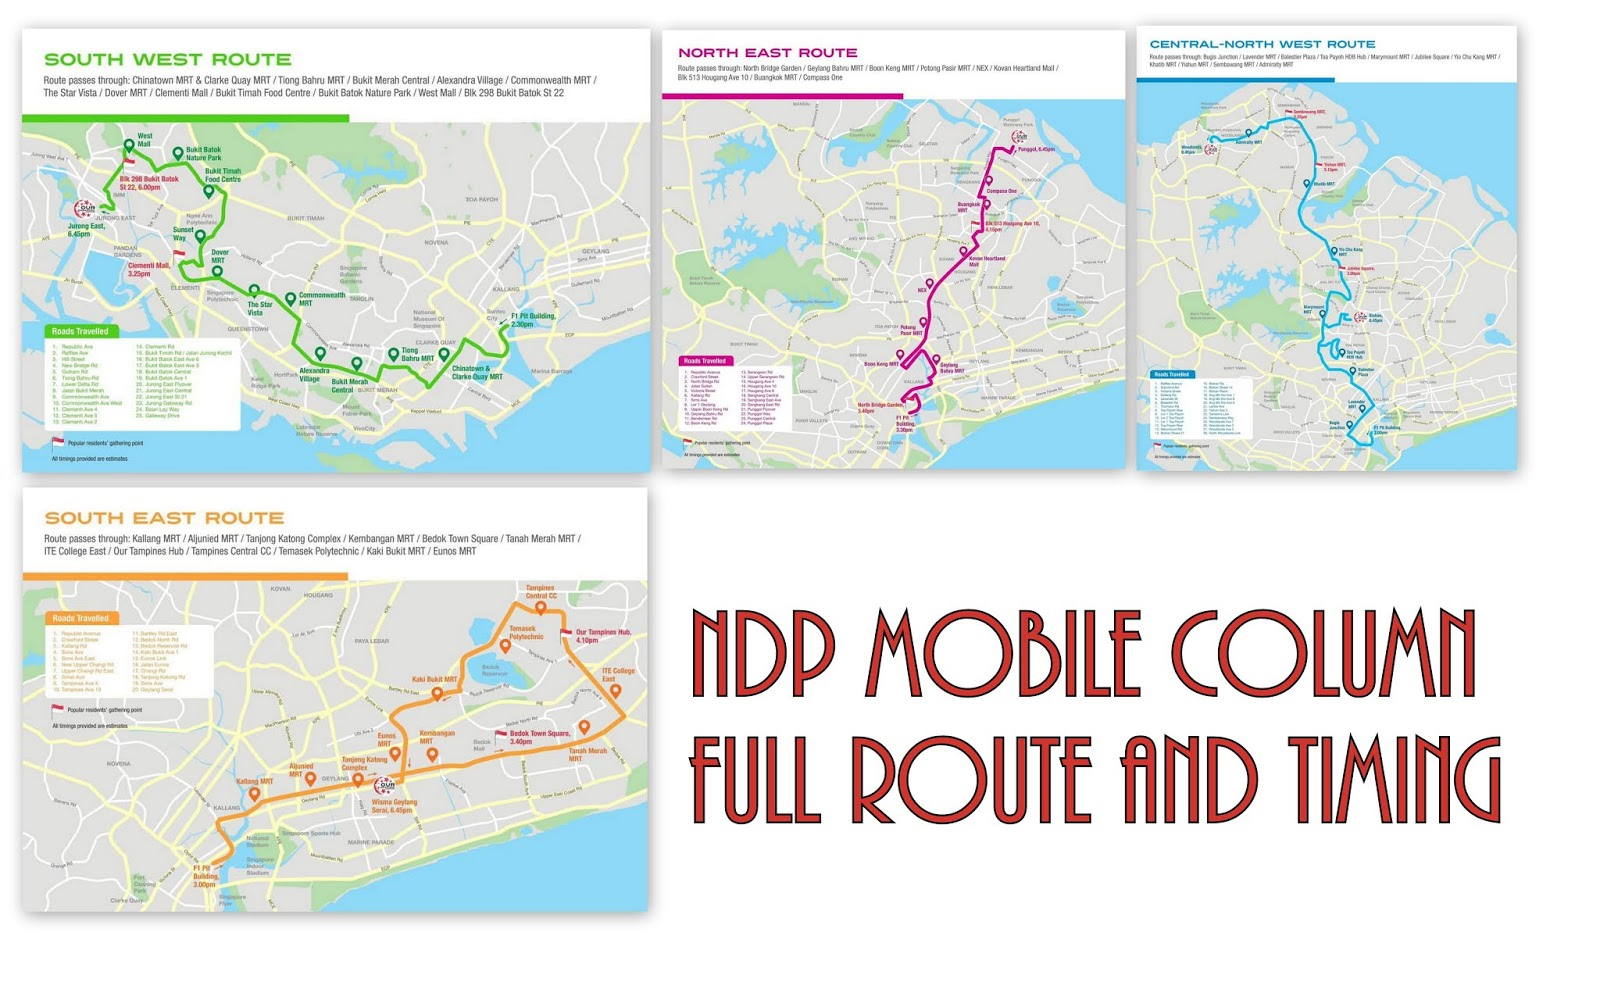 NDP Mobile Column @ Heartlands - Full Route, Locations and